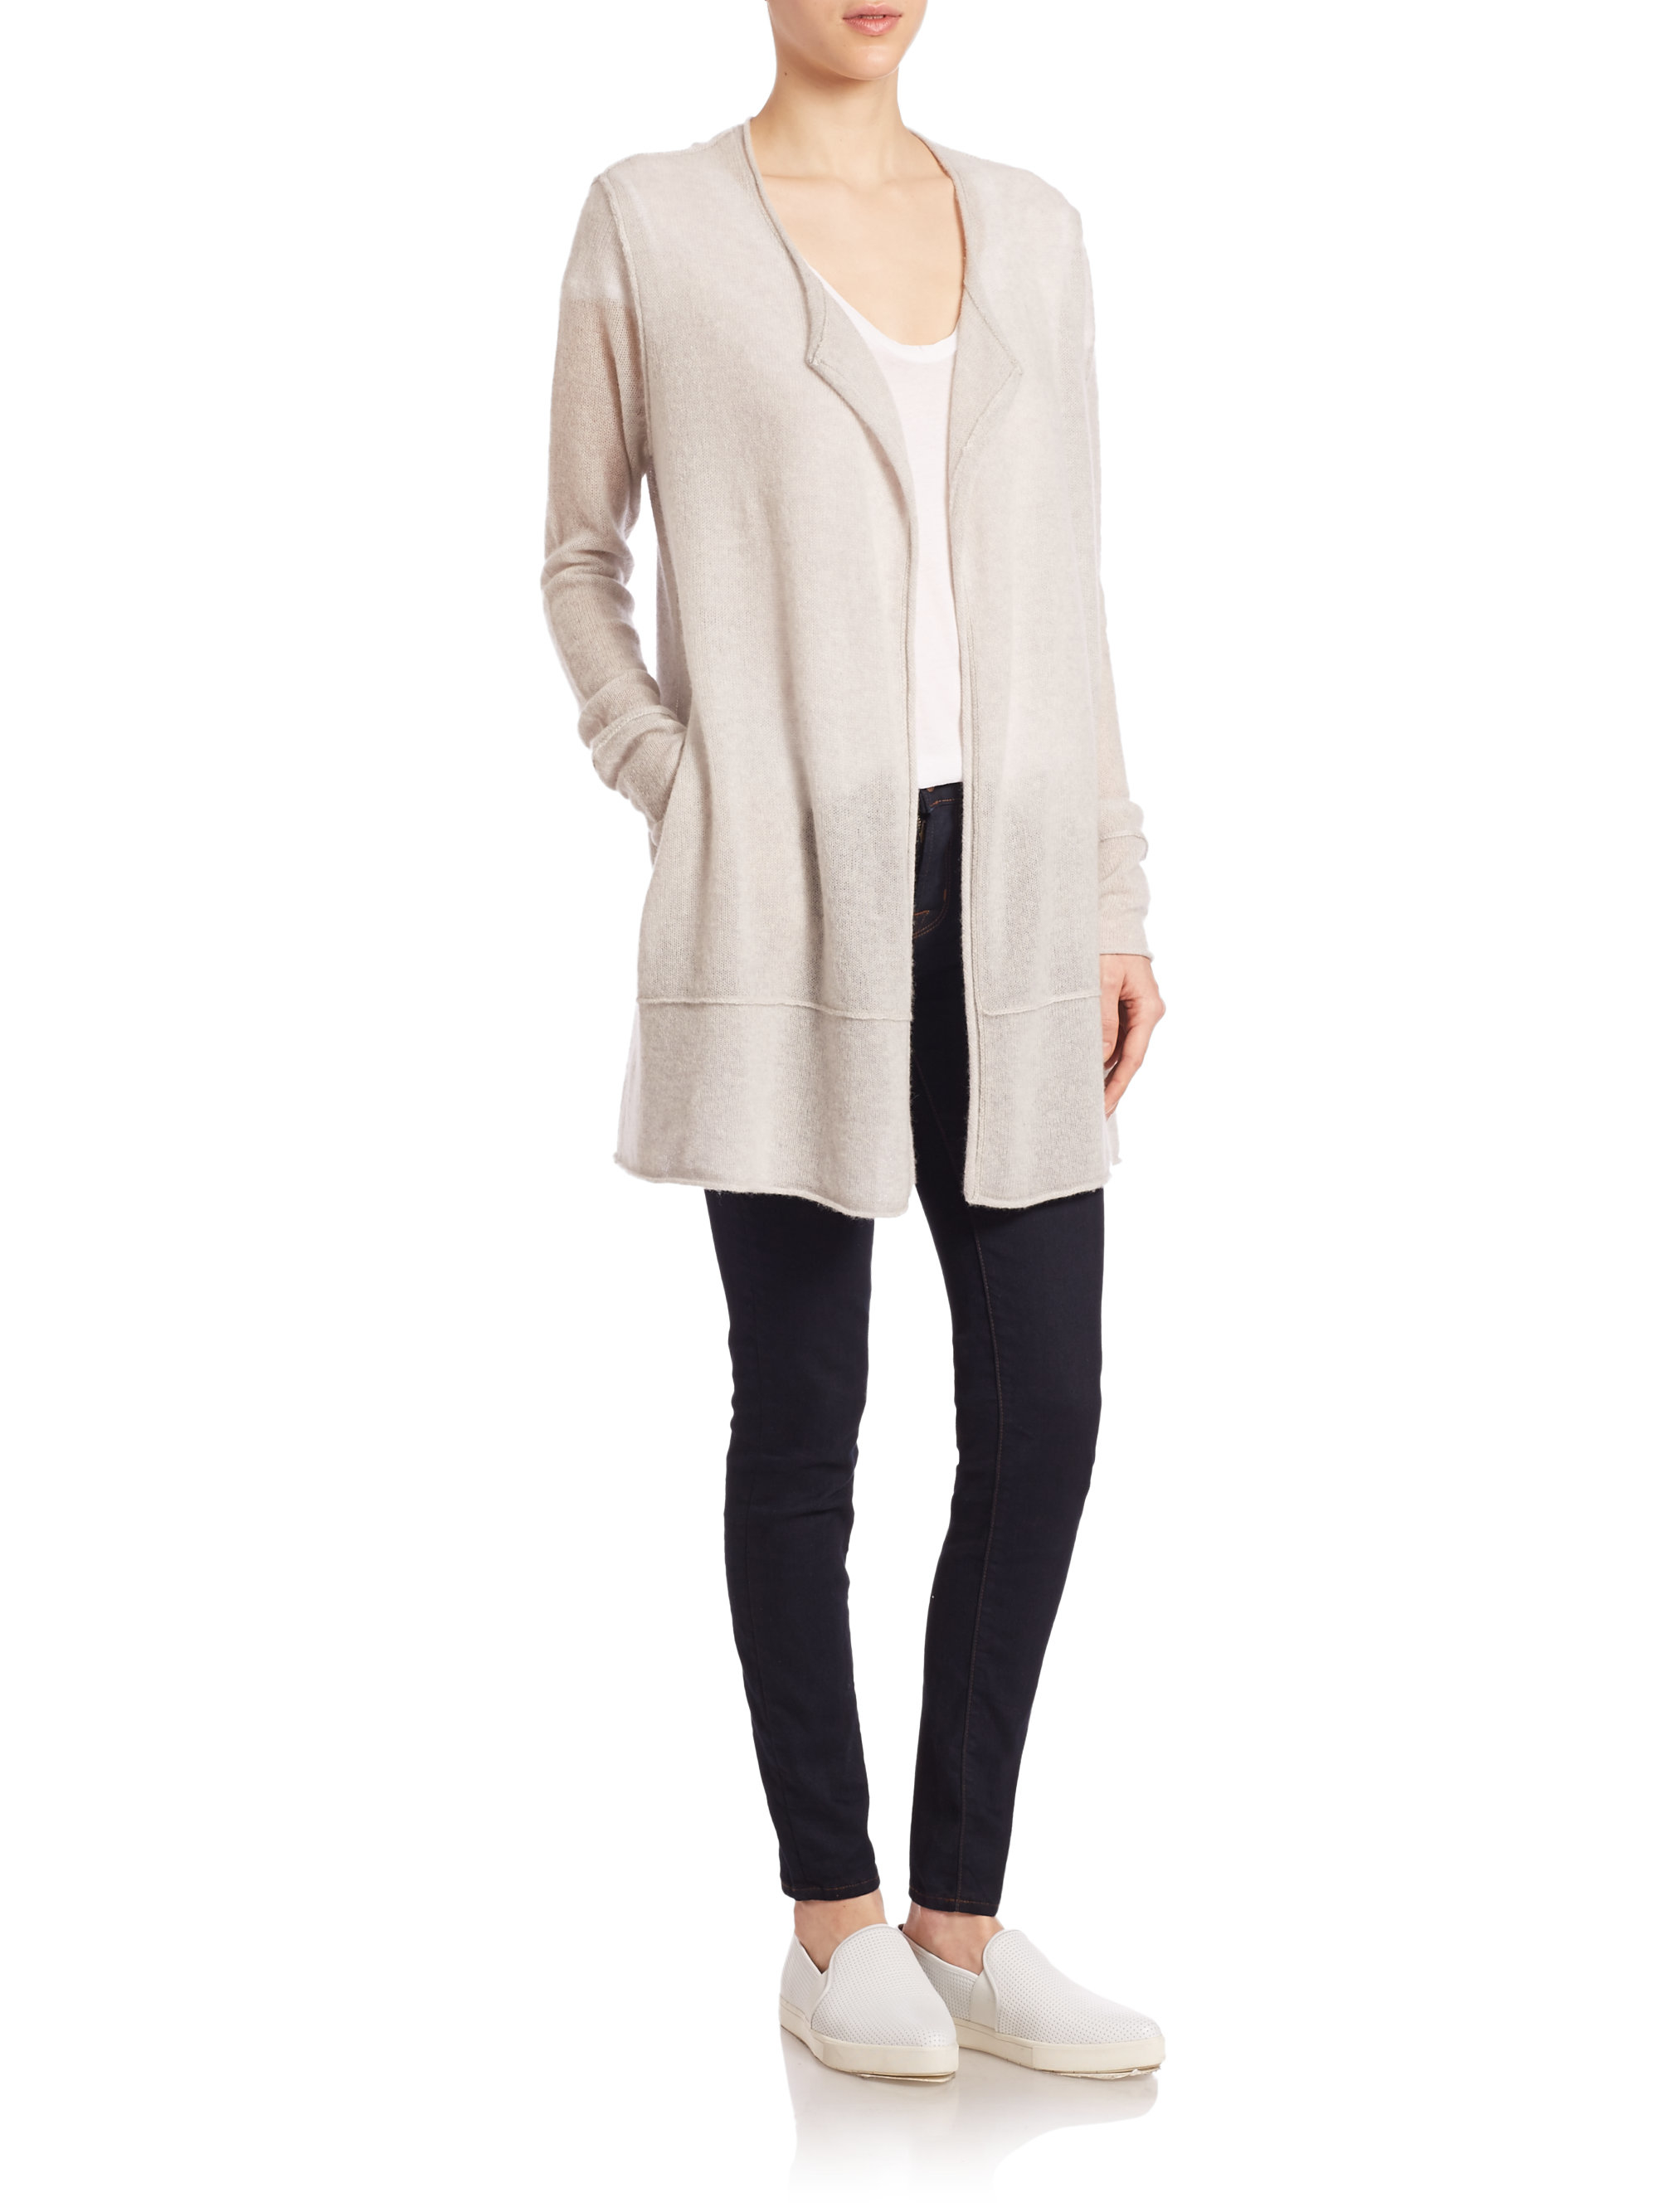 James perse Long Cashmere Cardigan in White | Lyst